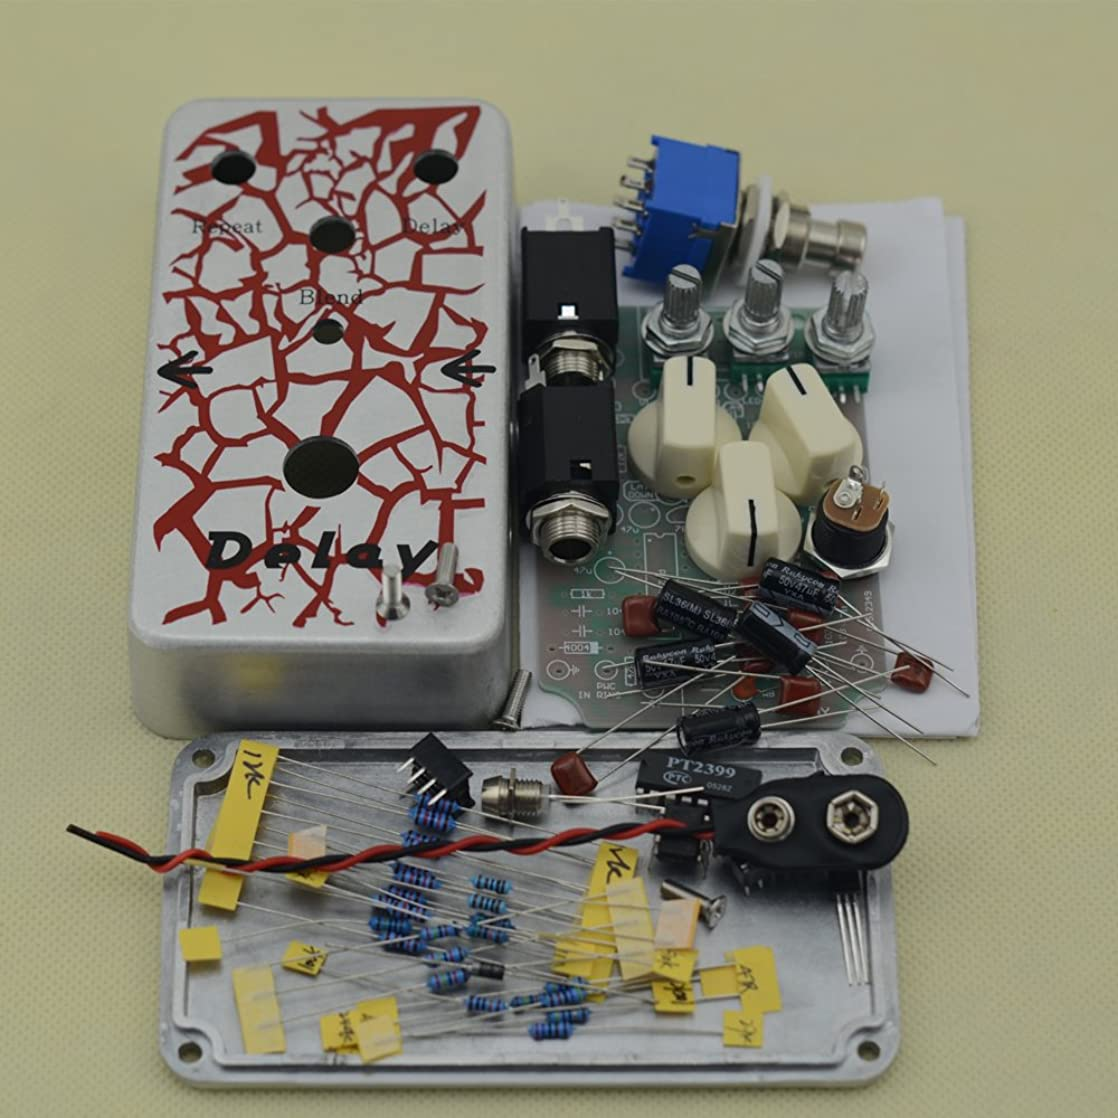 Make Your Own Delay Professional Guitar Effects Pedal All Kits With 1590B nxpzkakr60241